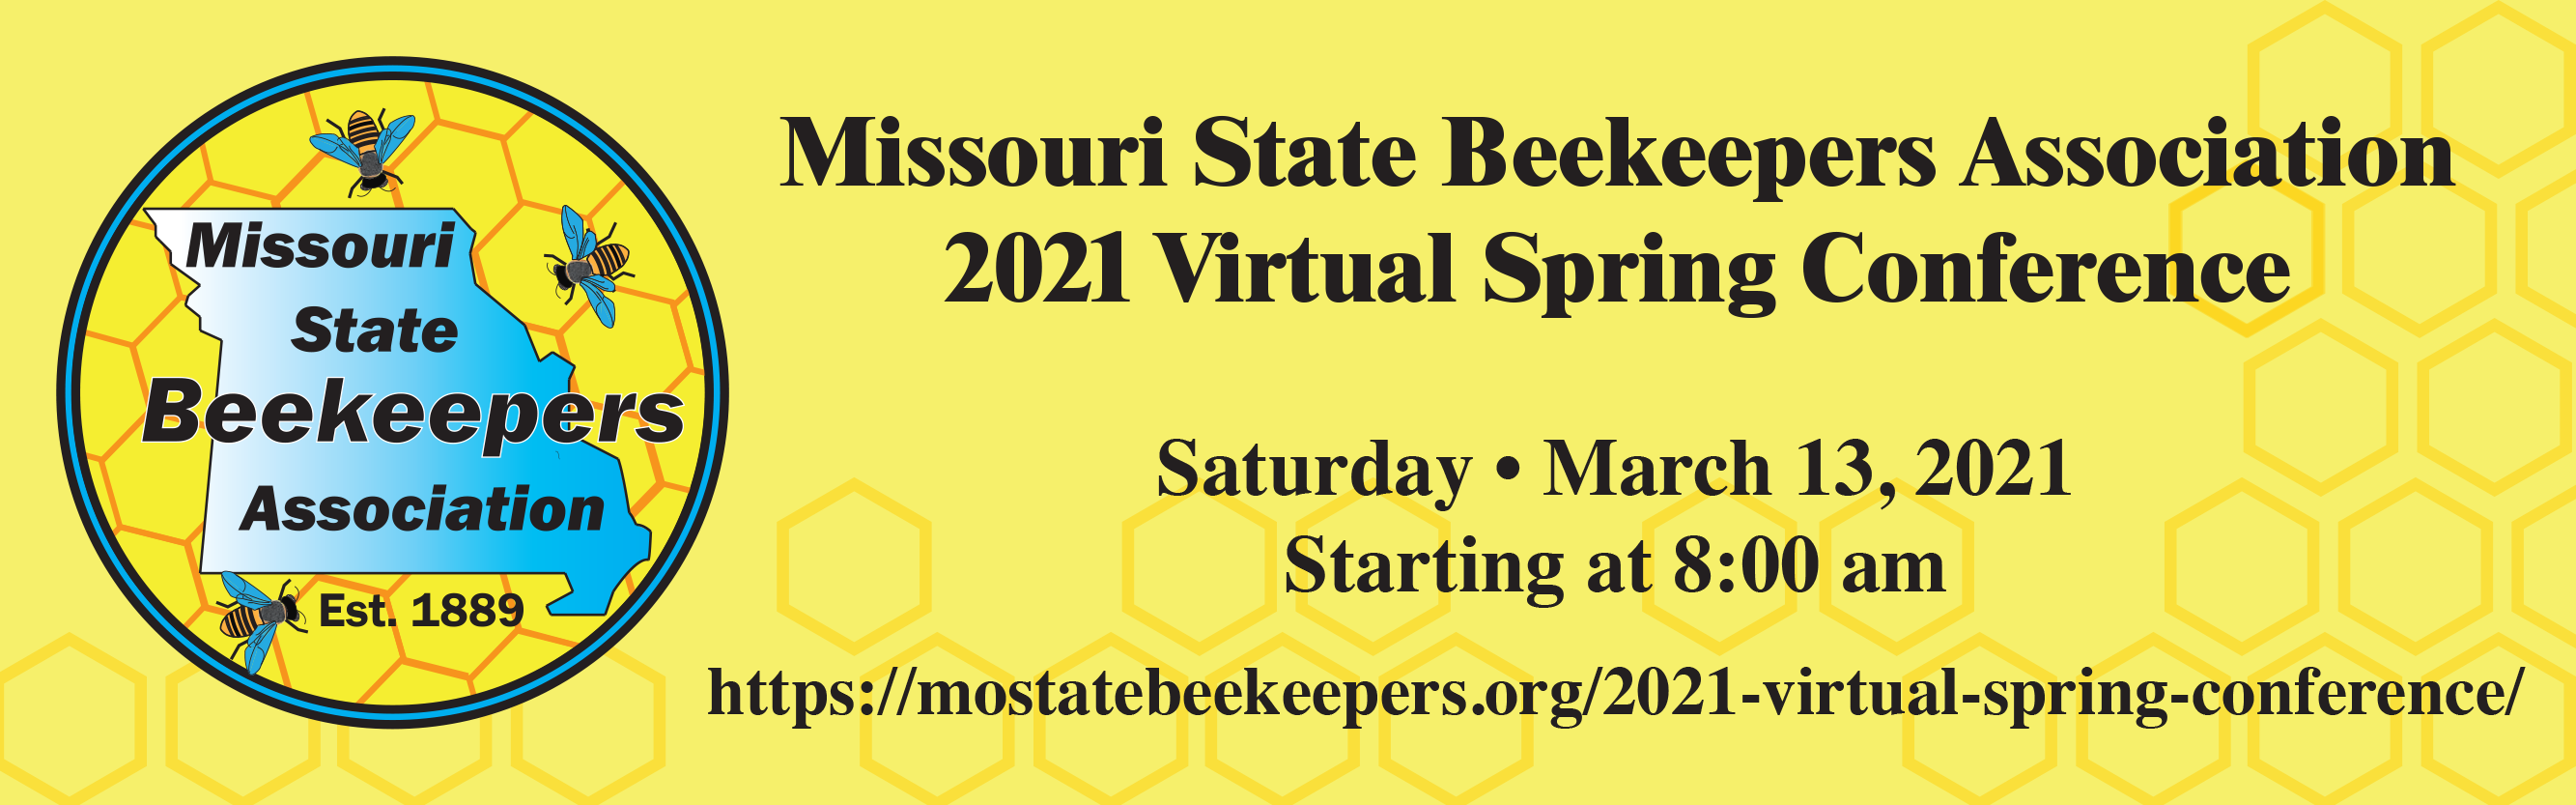 Missouri State Beekeepers 2021 Virtual conference